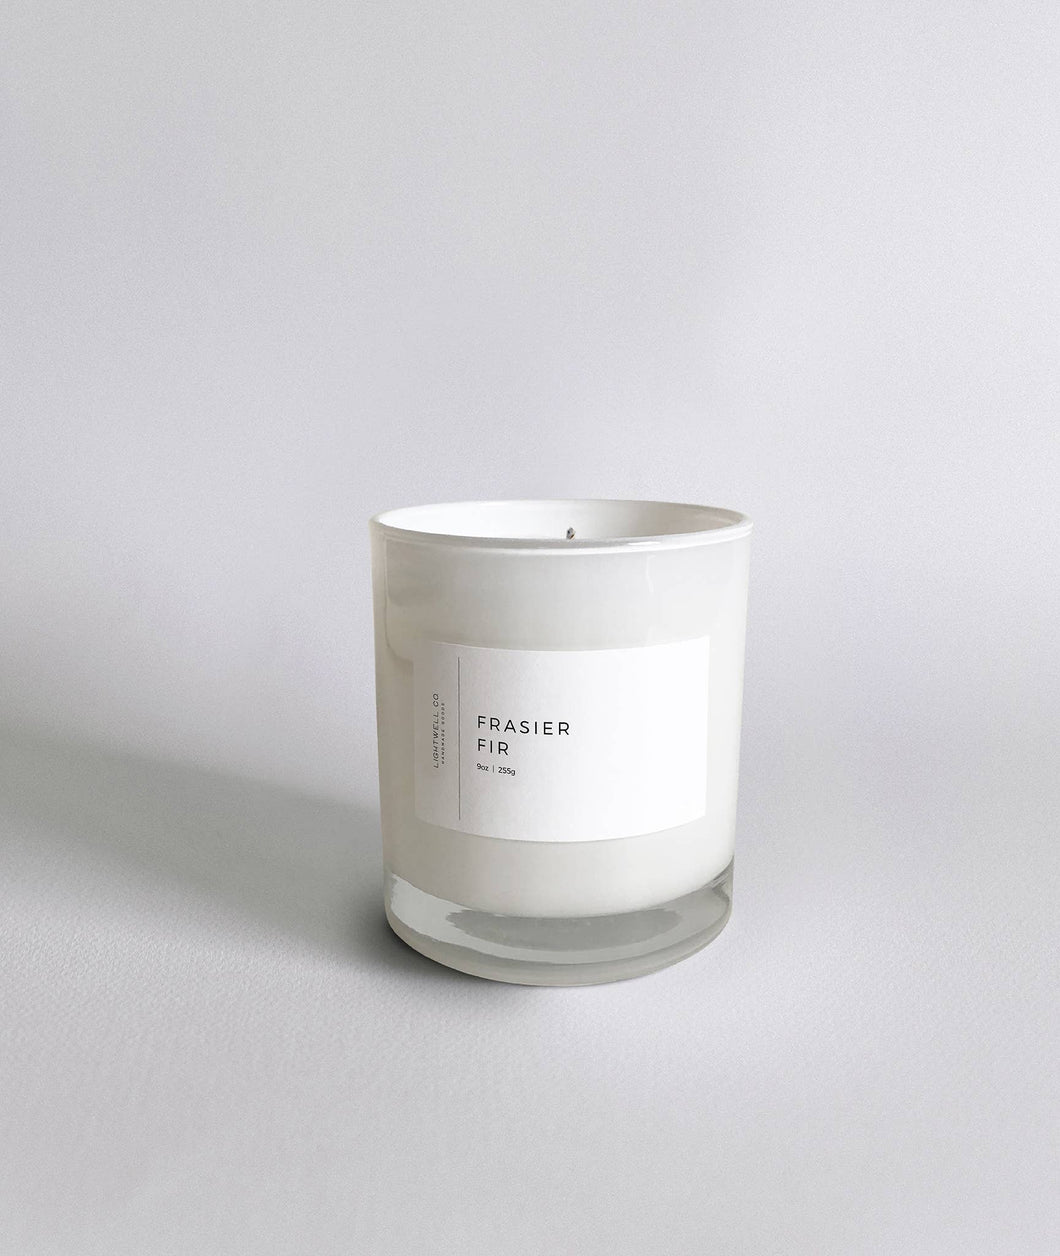 Lightwell Co - Frasier Fir White Tumbler